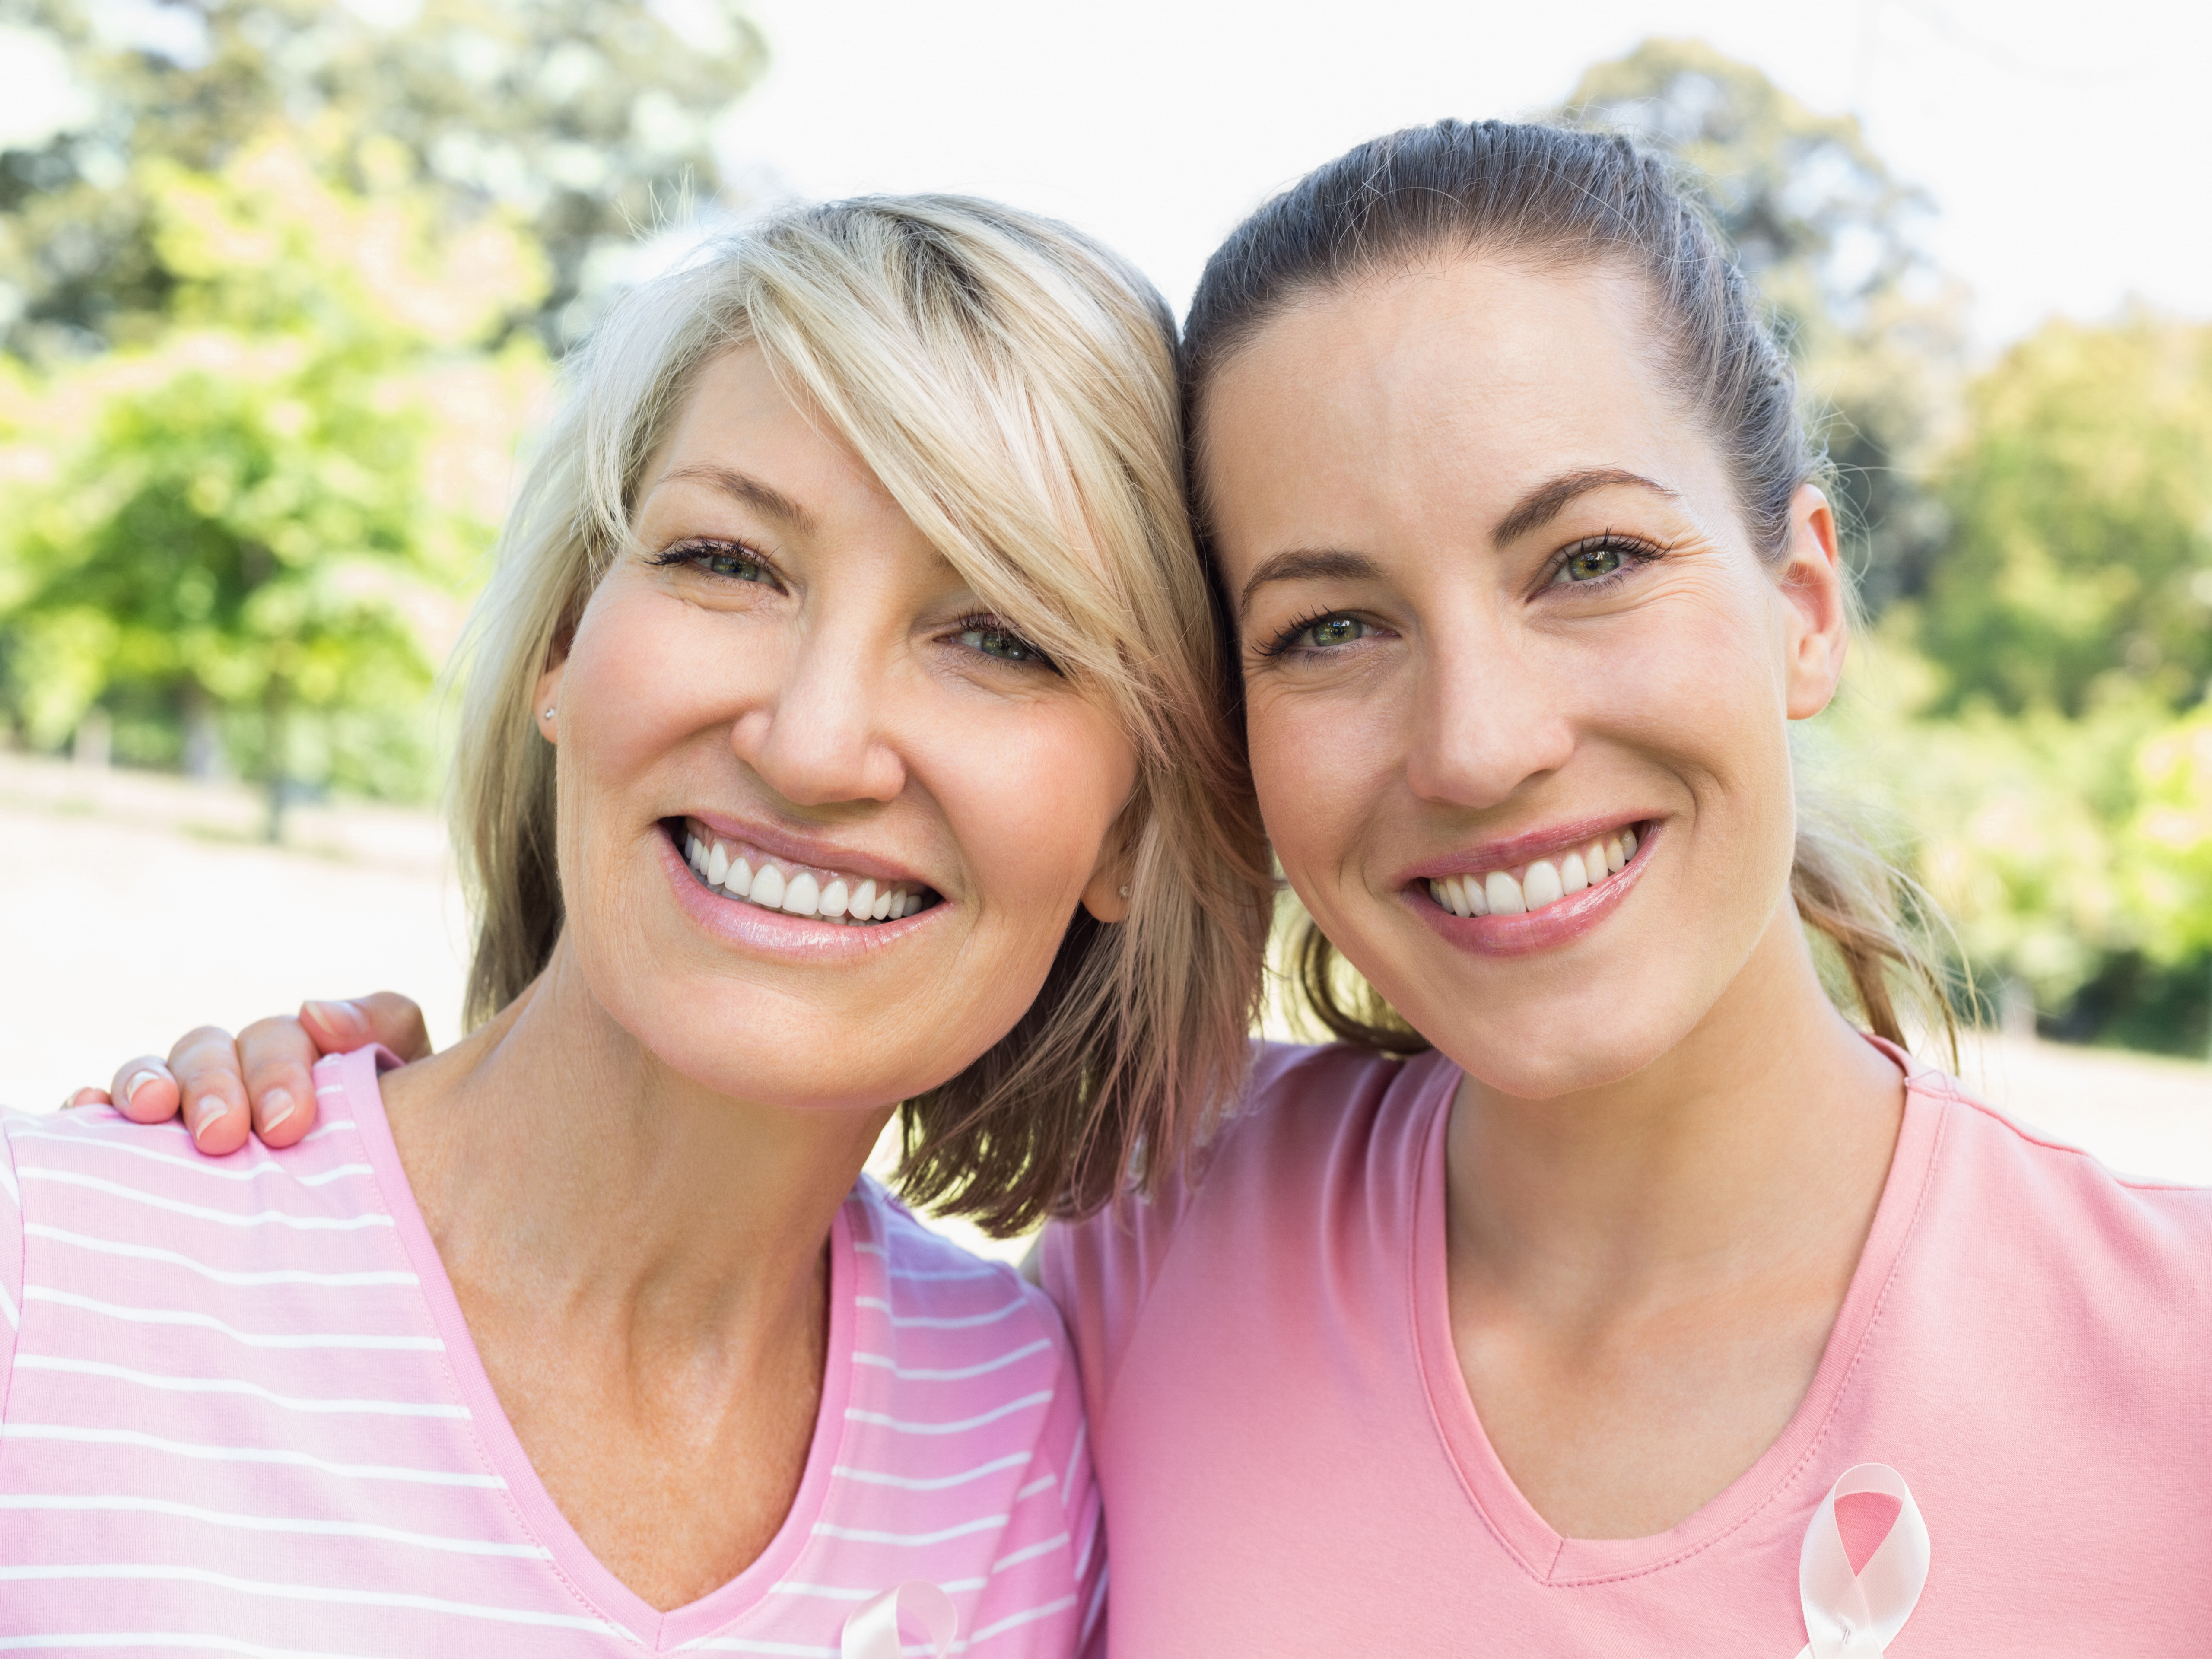 Shrink your breast cancer risk (Hint: It's easy, painless and sweat-free)